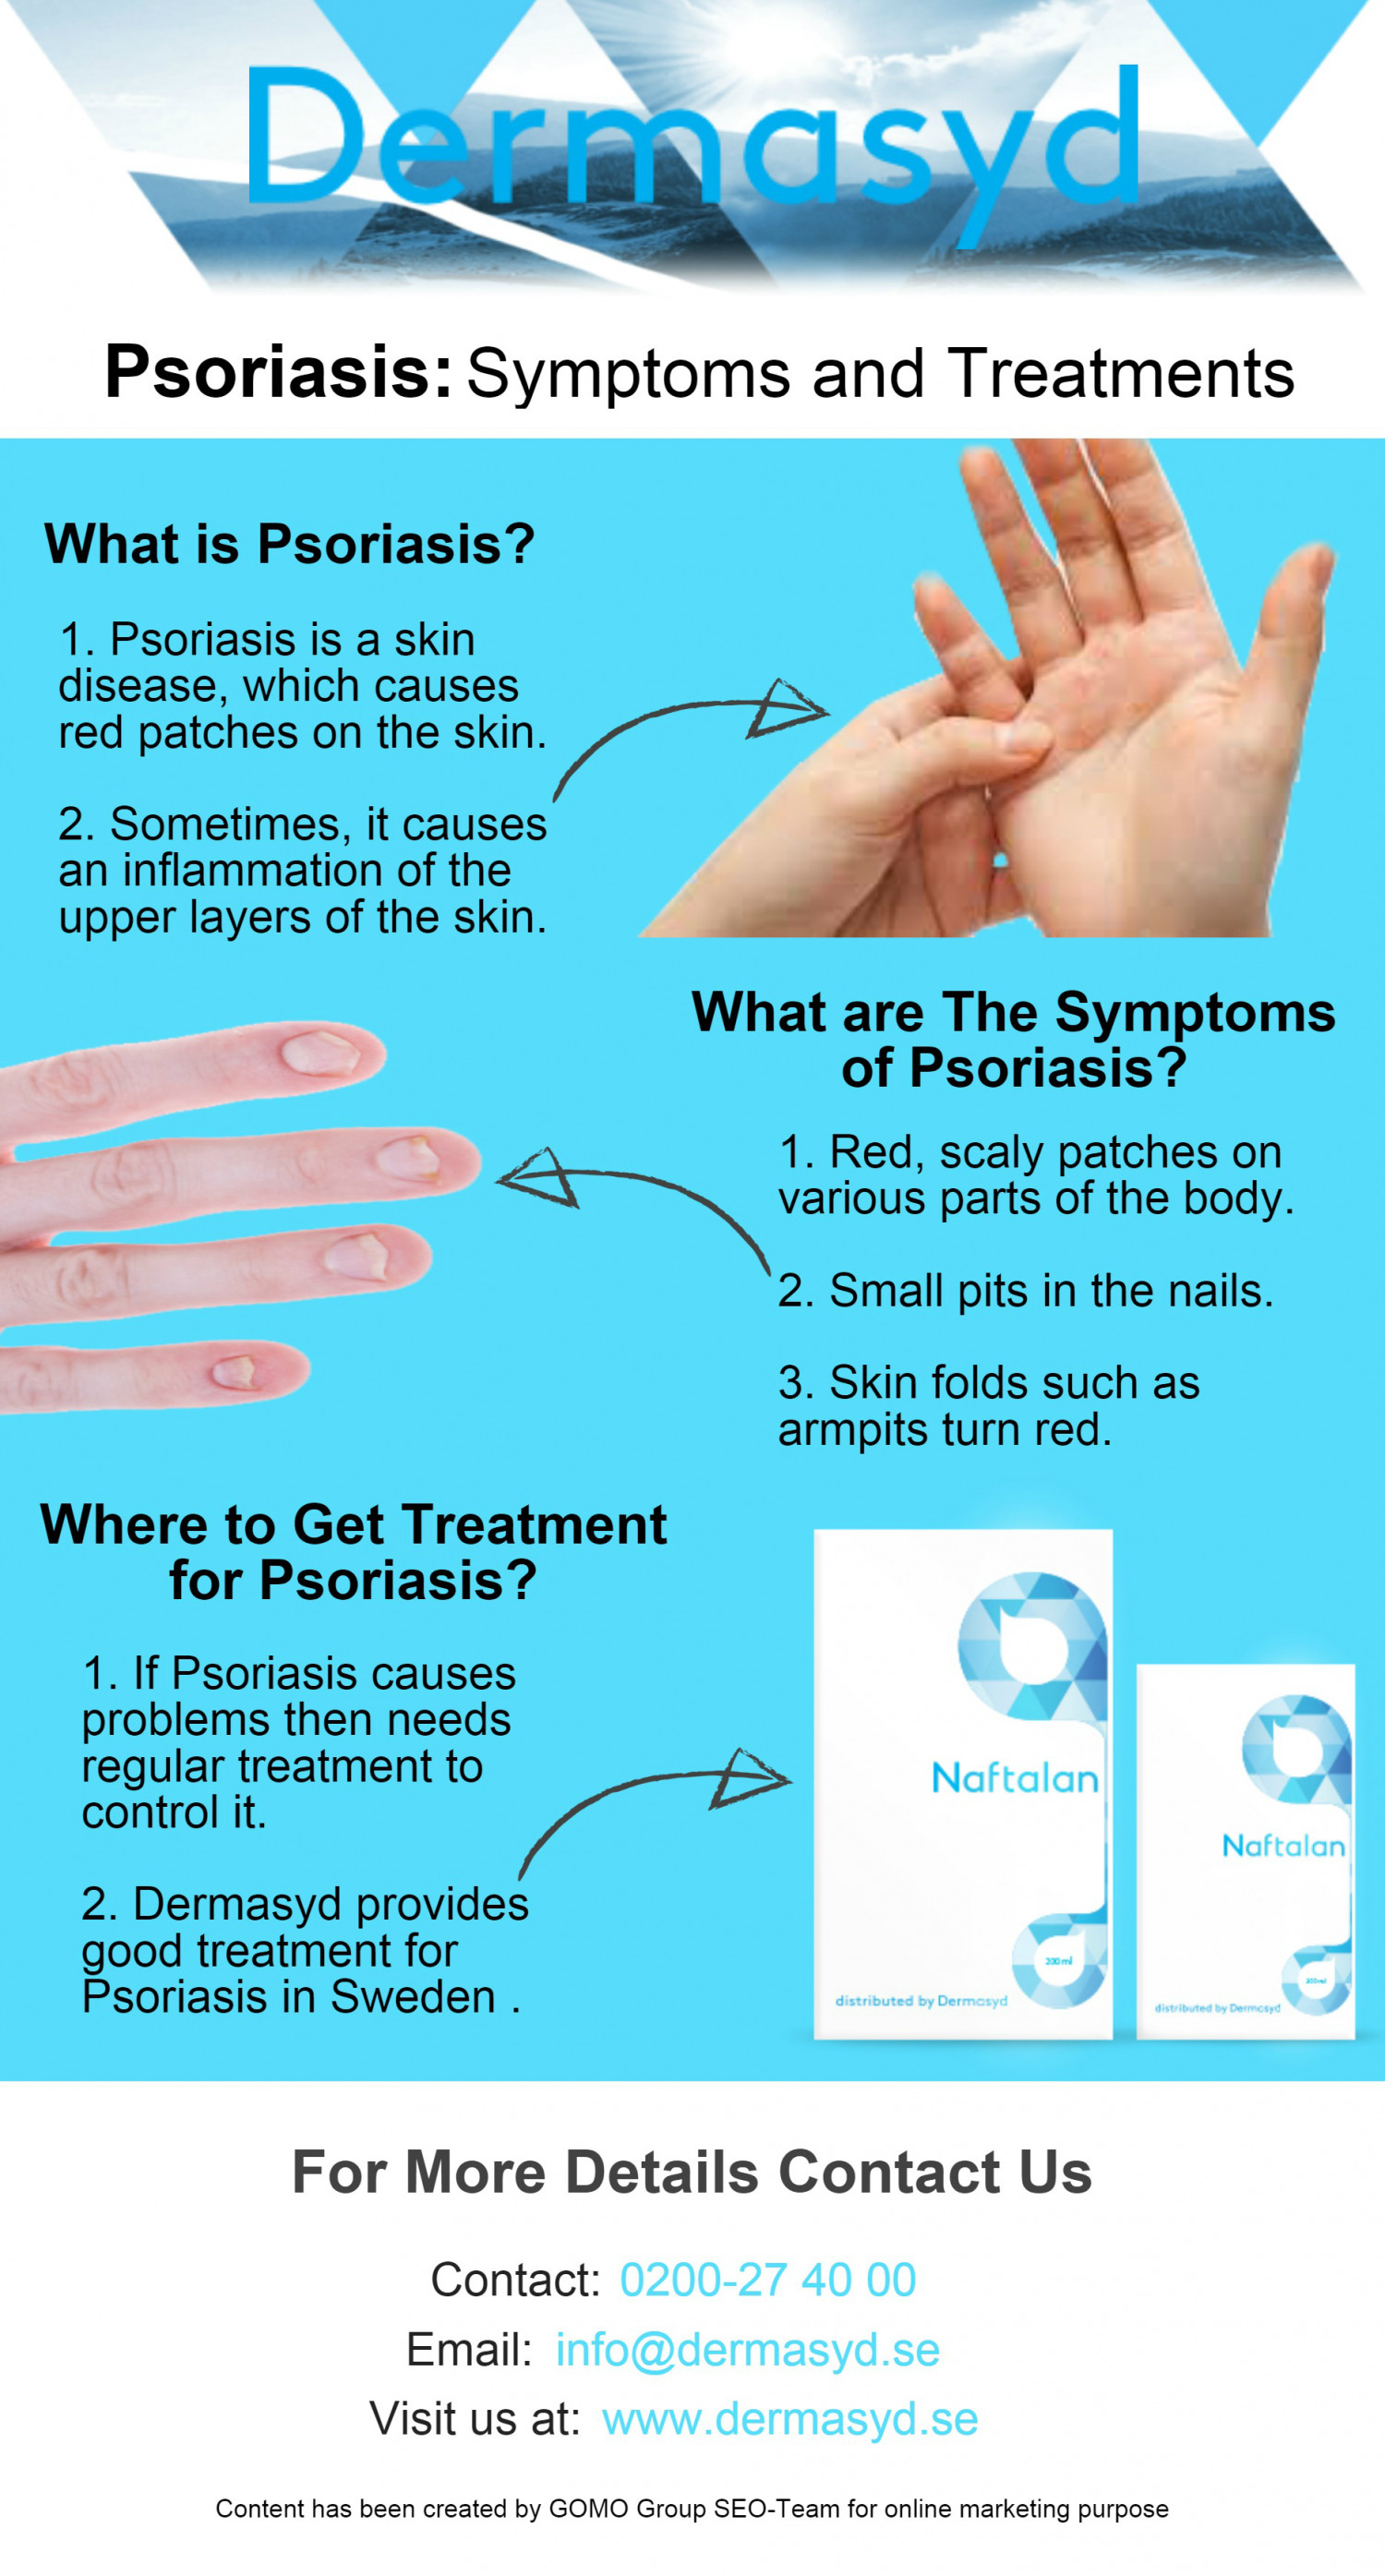 the diagnosis and treatment for psoriasis Learn about rash types, treatment, causes, symptoms, diagnosis, and prevention common skin rashes include poison ivy, hives, shingles, eczema, contact dermatitis.